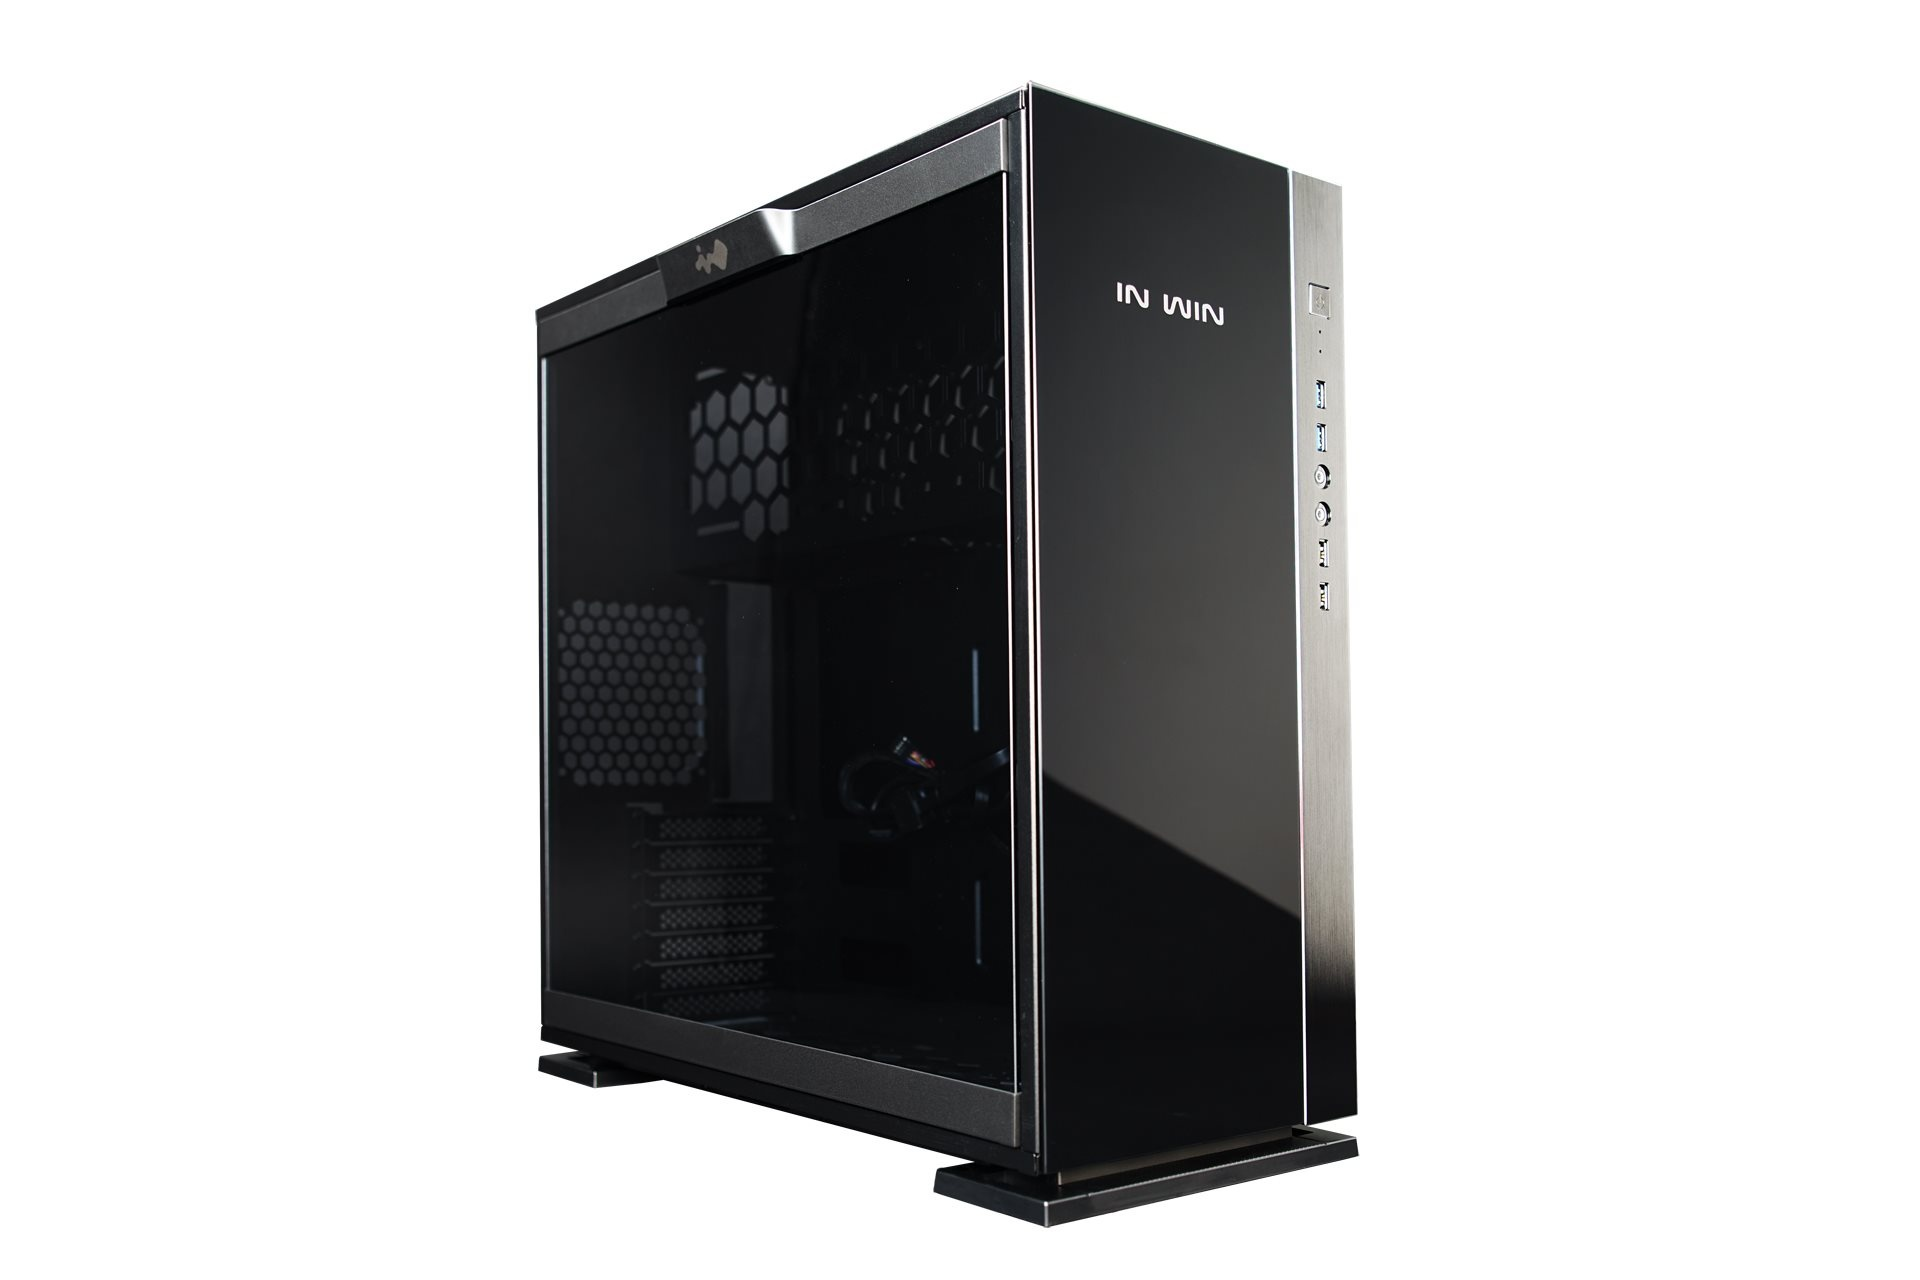 IN WIN skříň 305, Black, Mid Tower, bez zdroje, USB 3.0